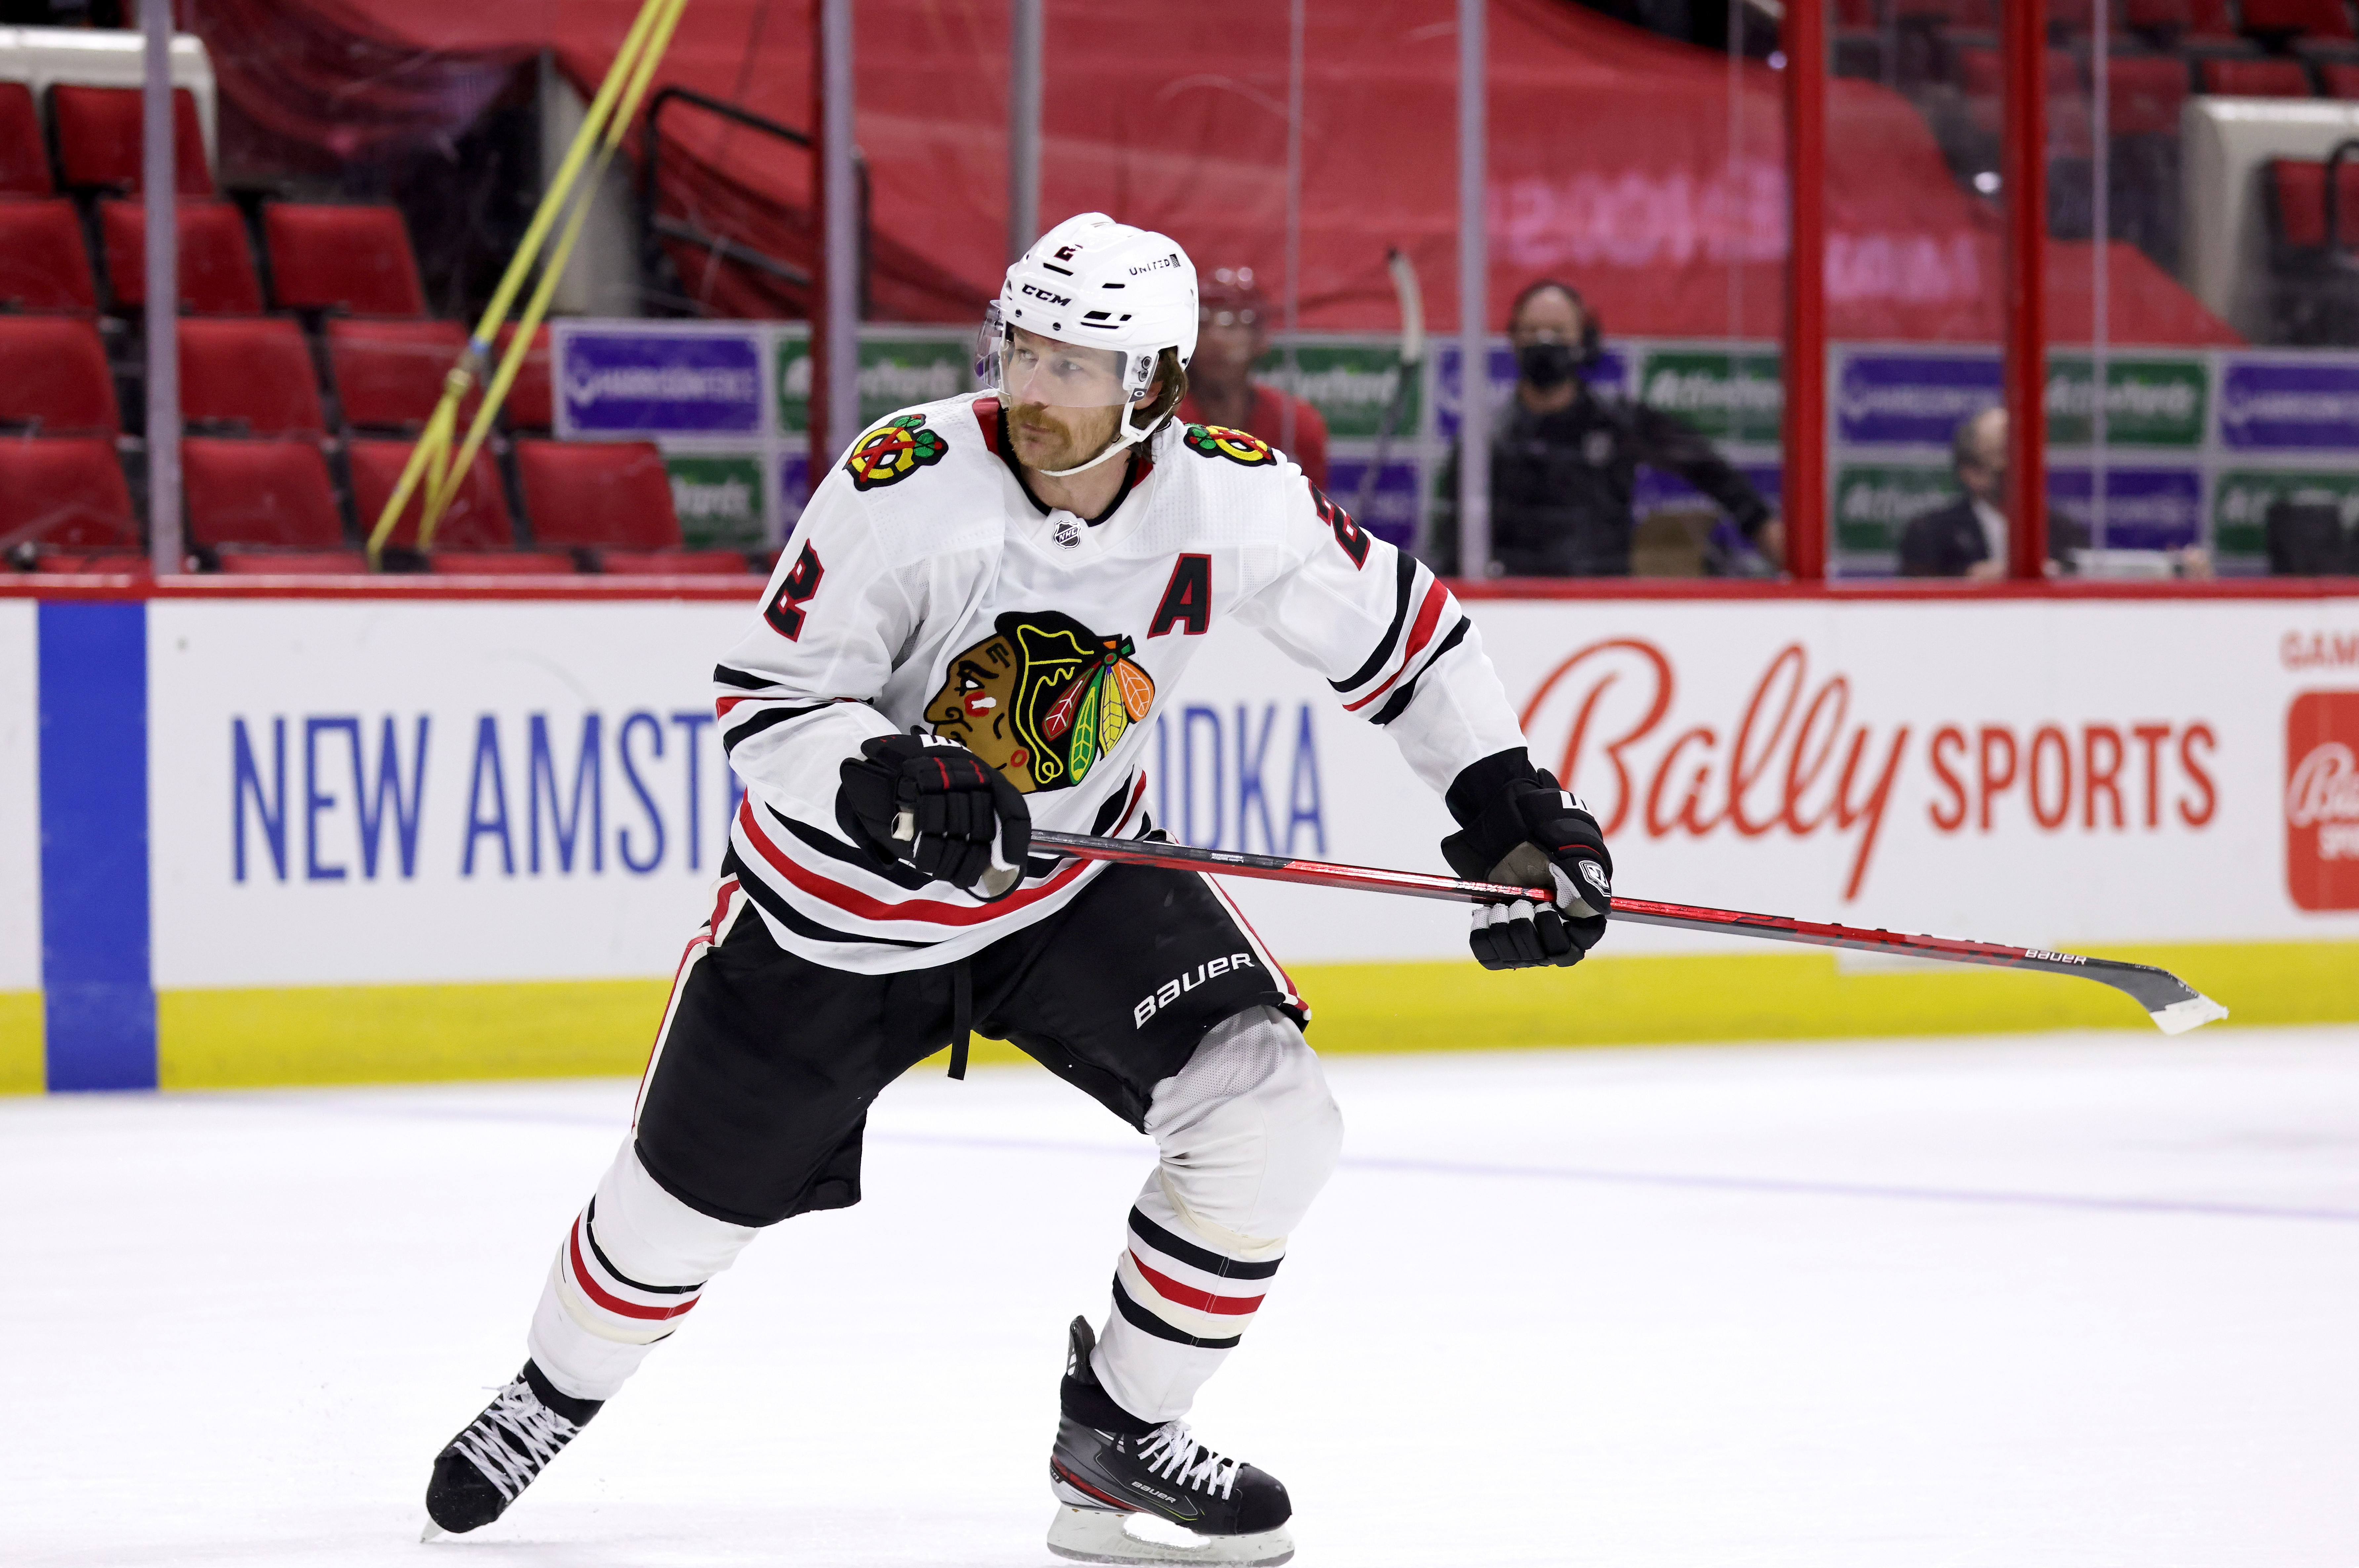 NHL Trade Rumors: Blackhawks Working to Deal Duncan Keith to PNW, Western Canada